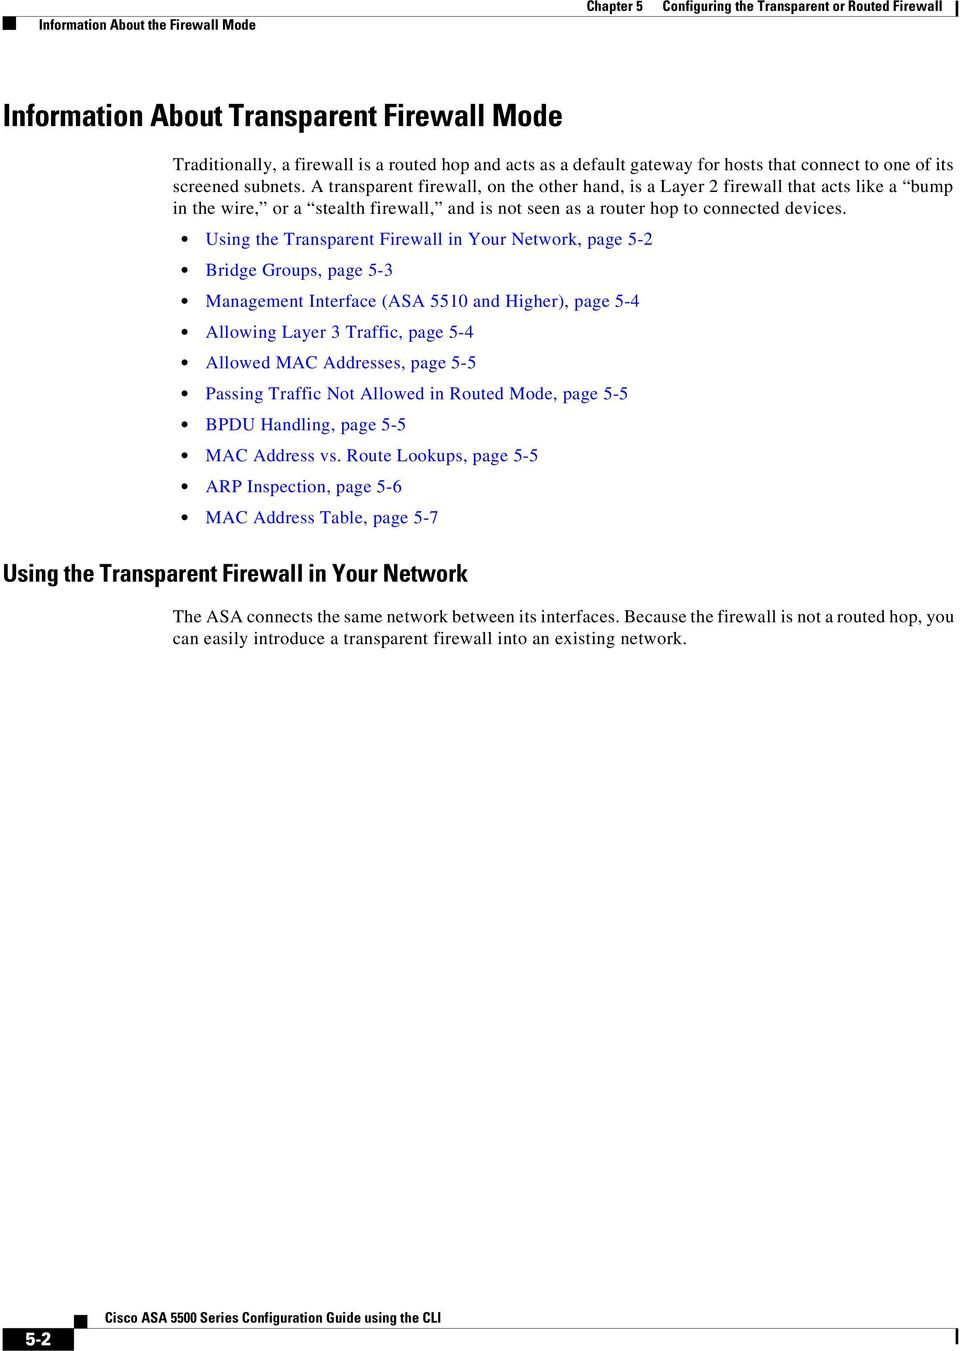 Configuring the Transparent or Routed Firewall - PDF